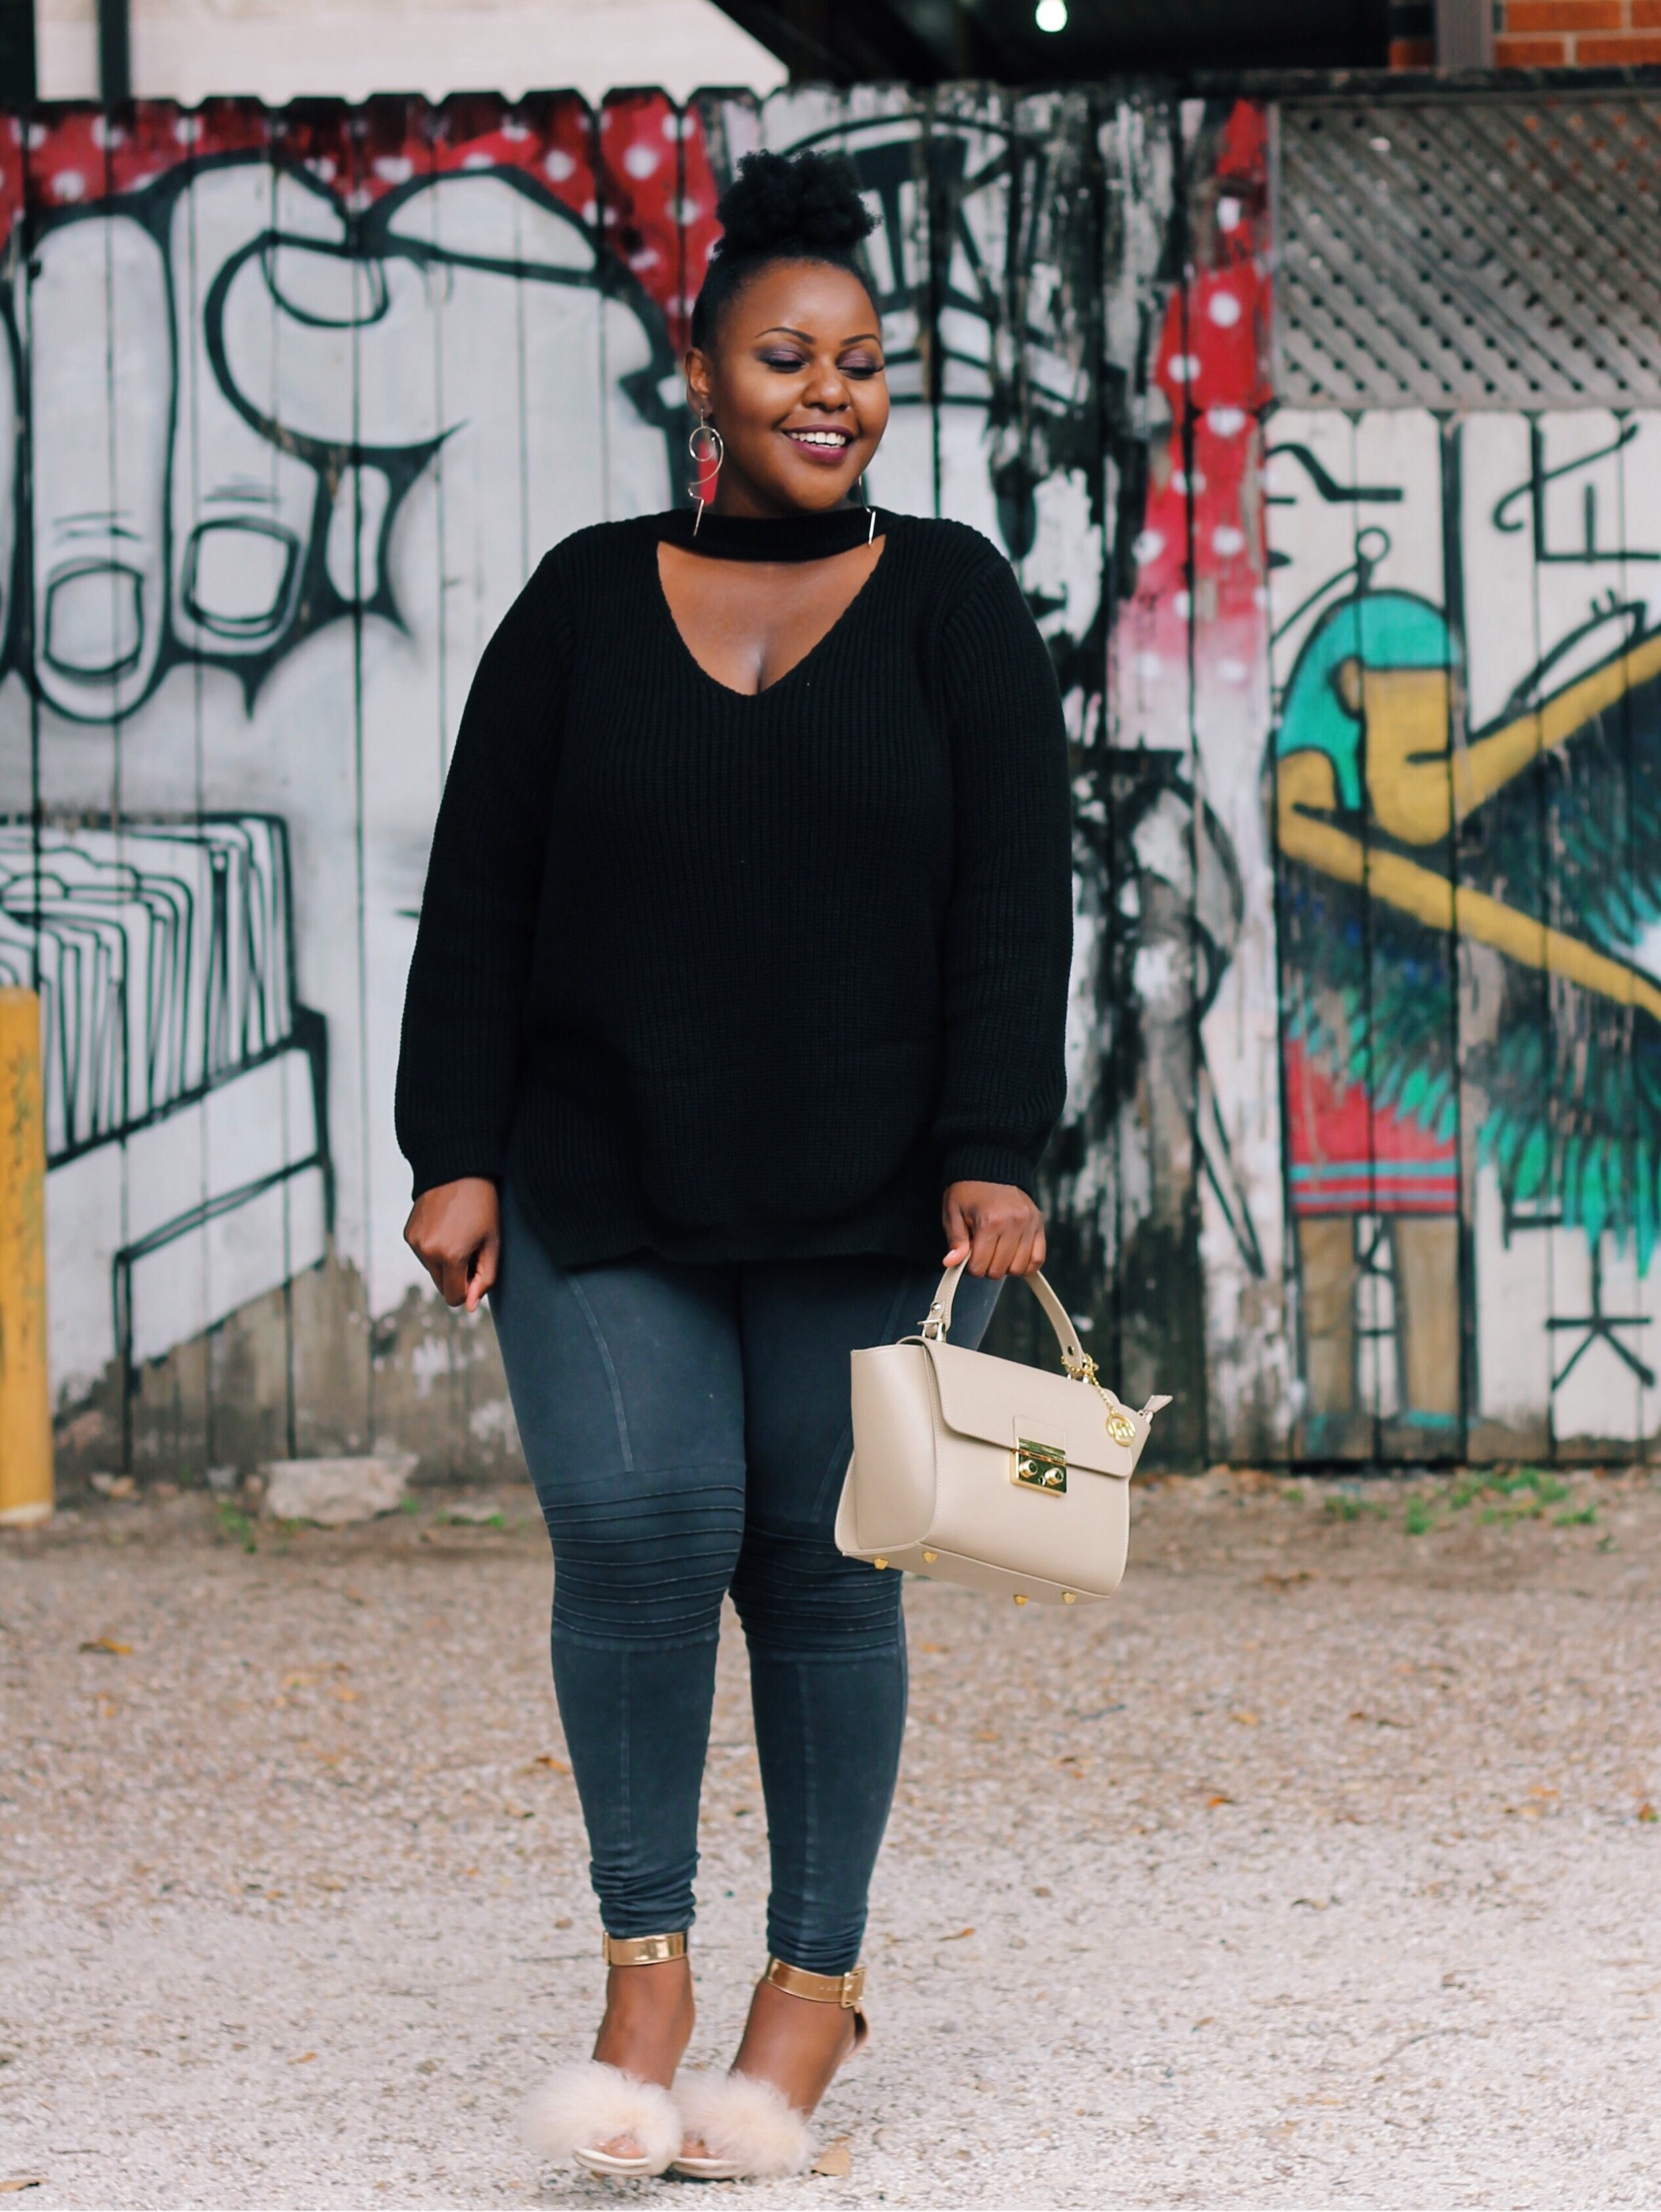 plus size black bloggers, clothes for curvy girls, curvy girl fashion clothing, plus blog, plus size fashion tips, plus size women blog, at fashion blog, plus size high fashion, curvy women fashion, plus blog, curvy girl fashion blog, style plus curves, plus size fashion instagram, curvy girl blog, bbw blog, plus size street fashion, plus size beauty blog, plus size fashion ideas, curvy girl summer outfits, plus size fashion magazine, plus fashion bloggers, boohoo, cutout tops sweaters